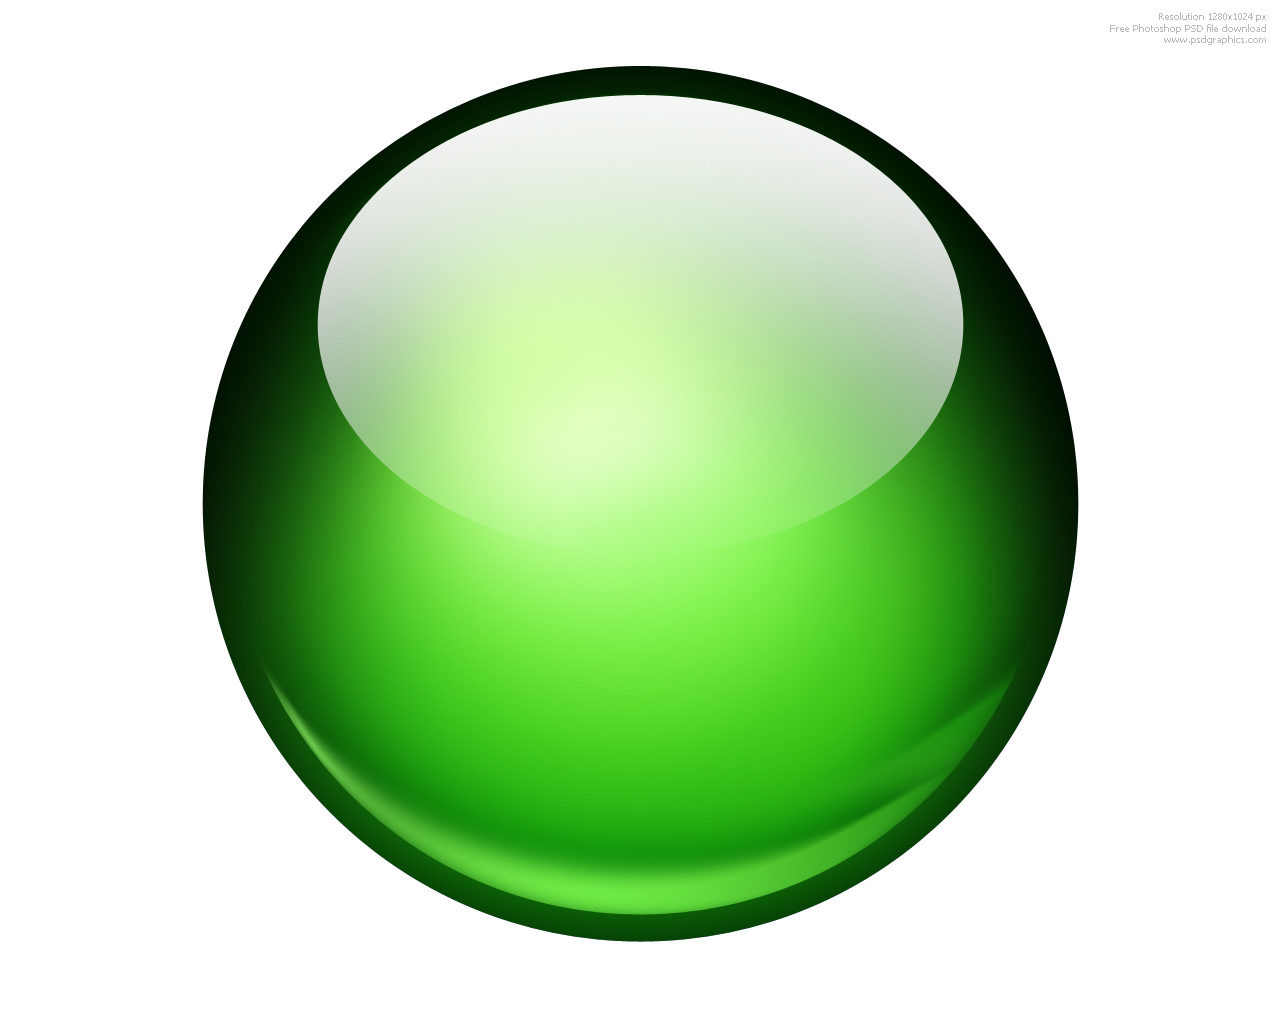 Glossy Ball Color Icon 12550 Free Icons And Png Backgrounds